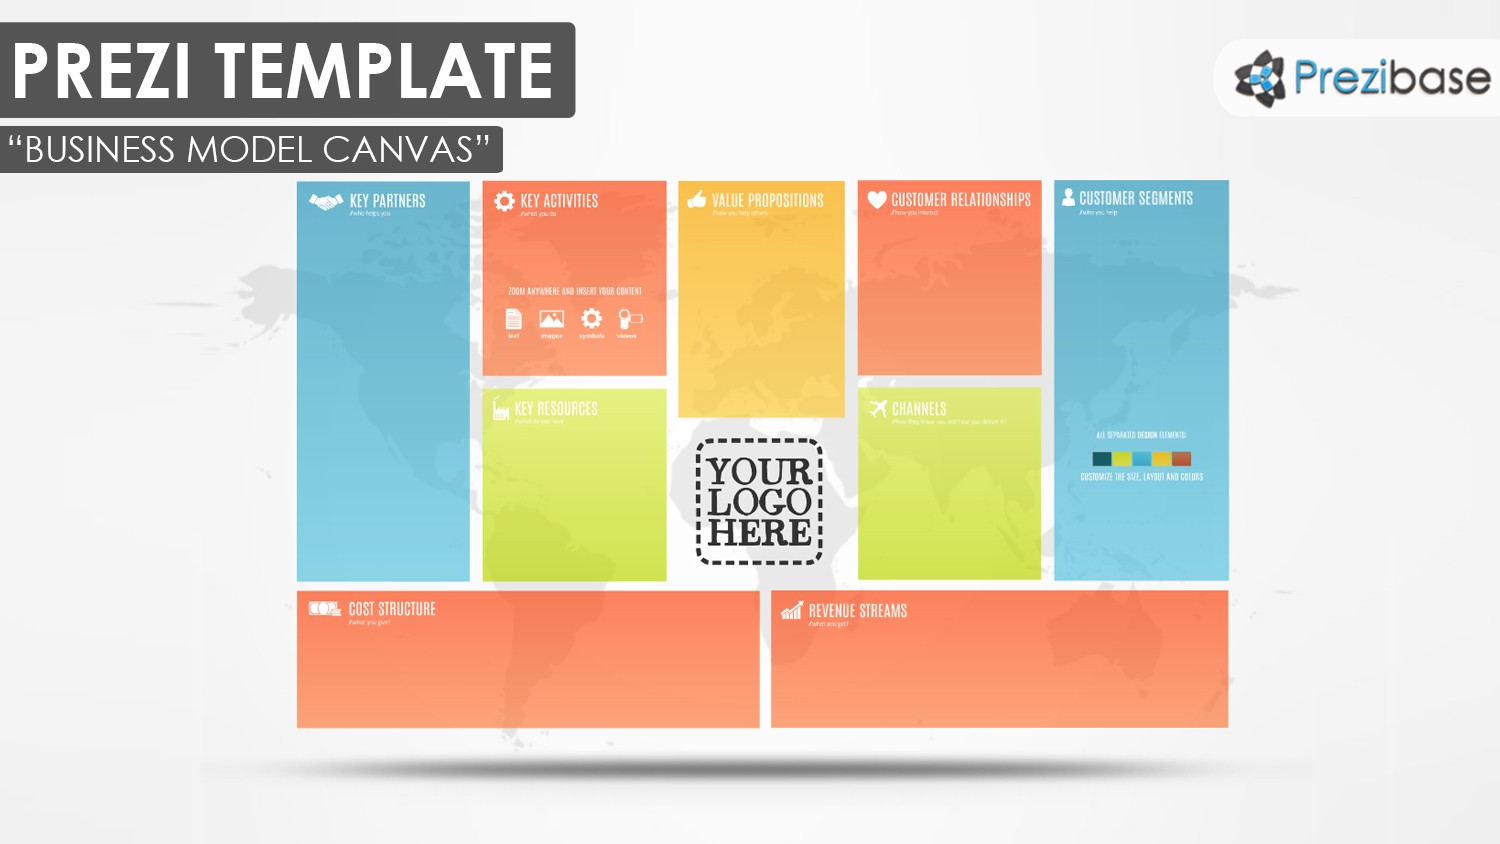 Business model canvas prezi template prezibase business model canvas colorful pitch world map prezi template accmission Image collections